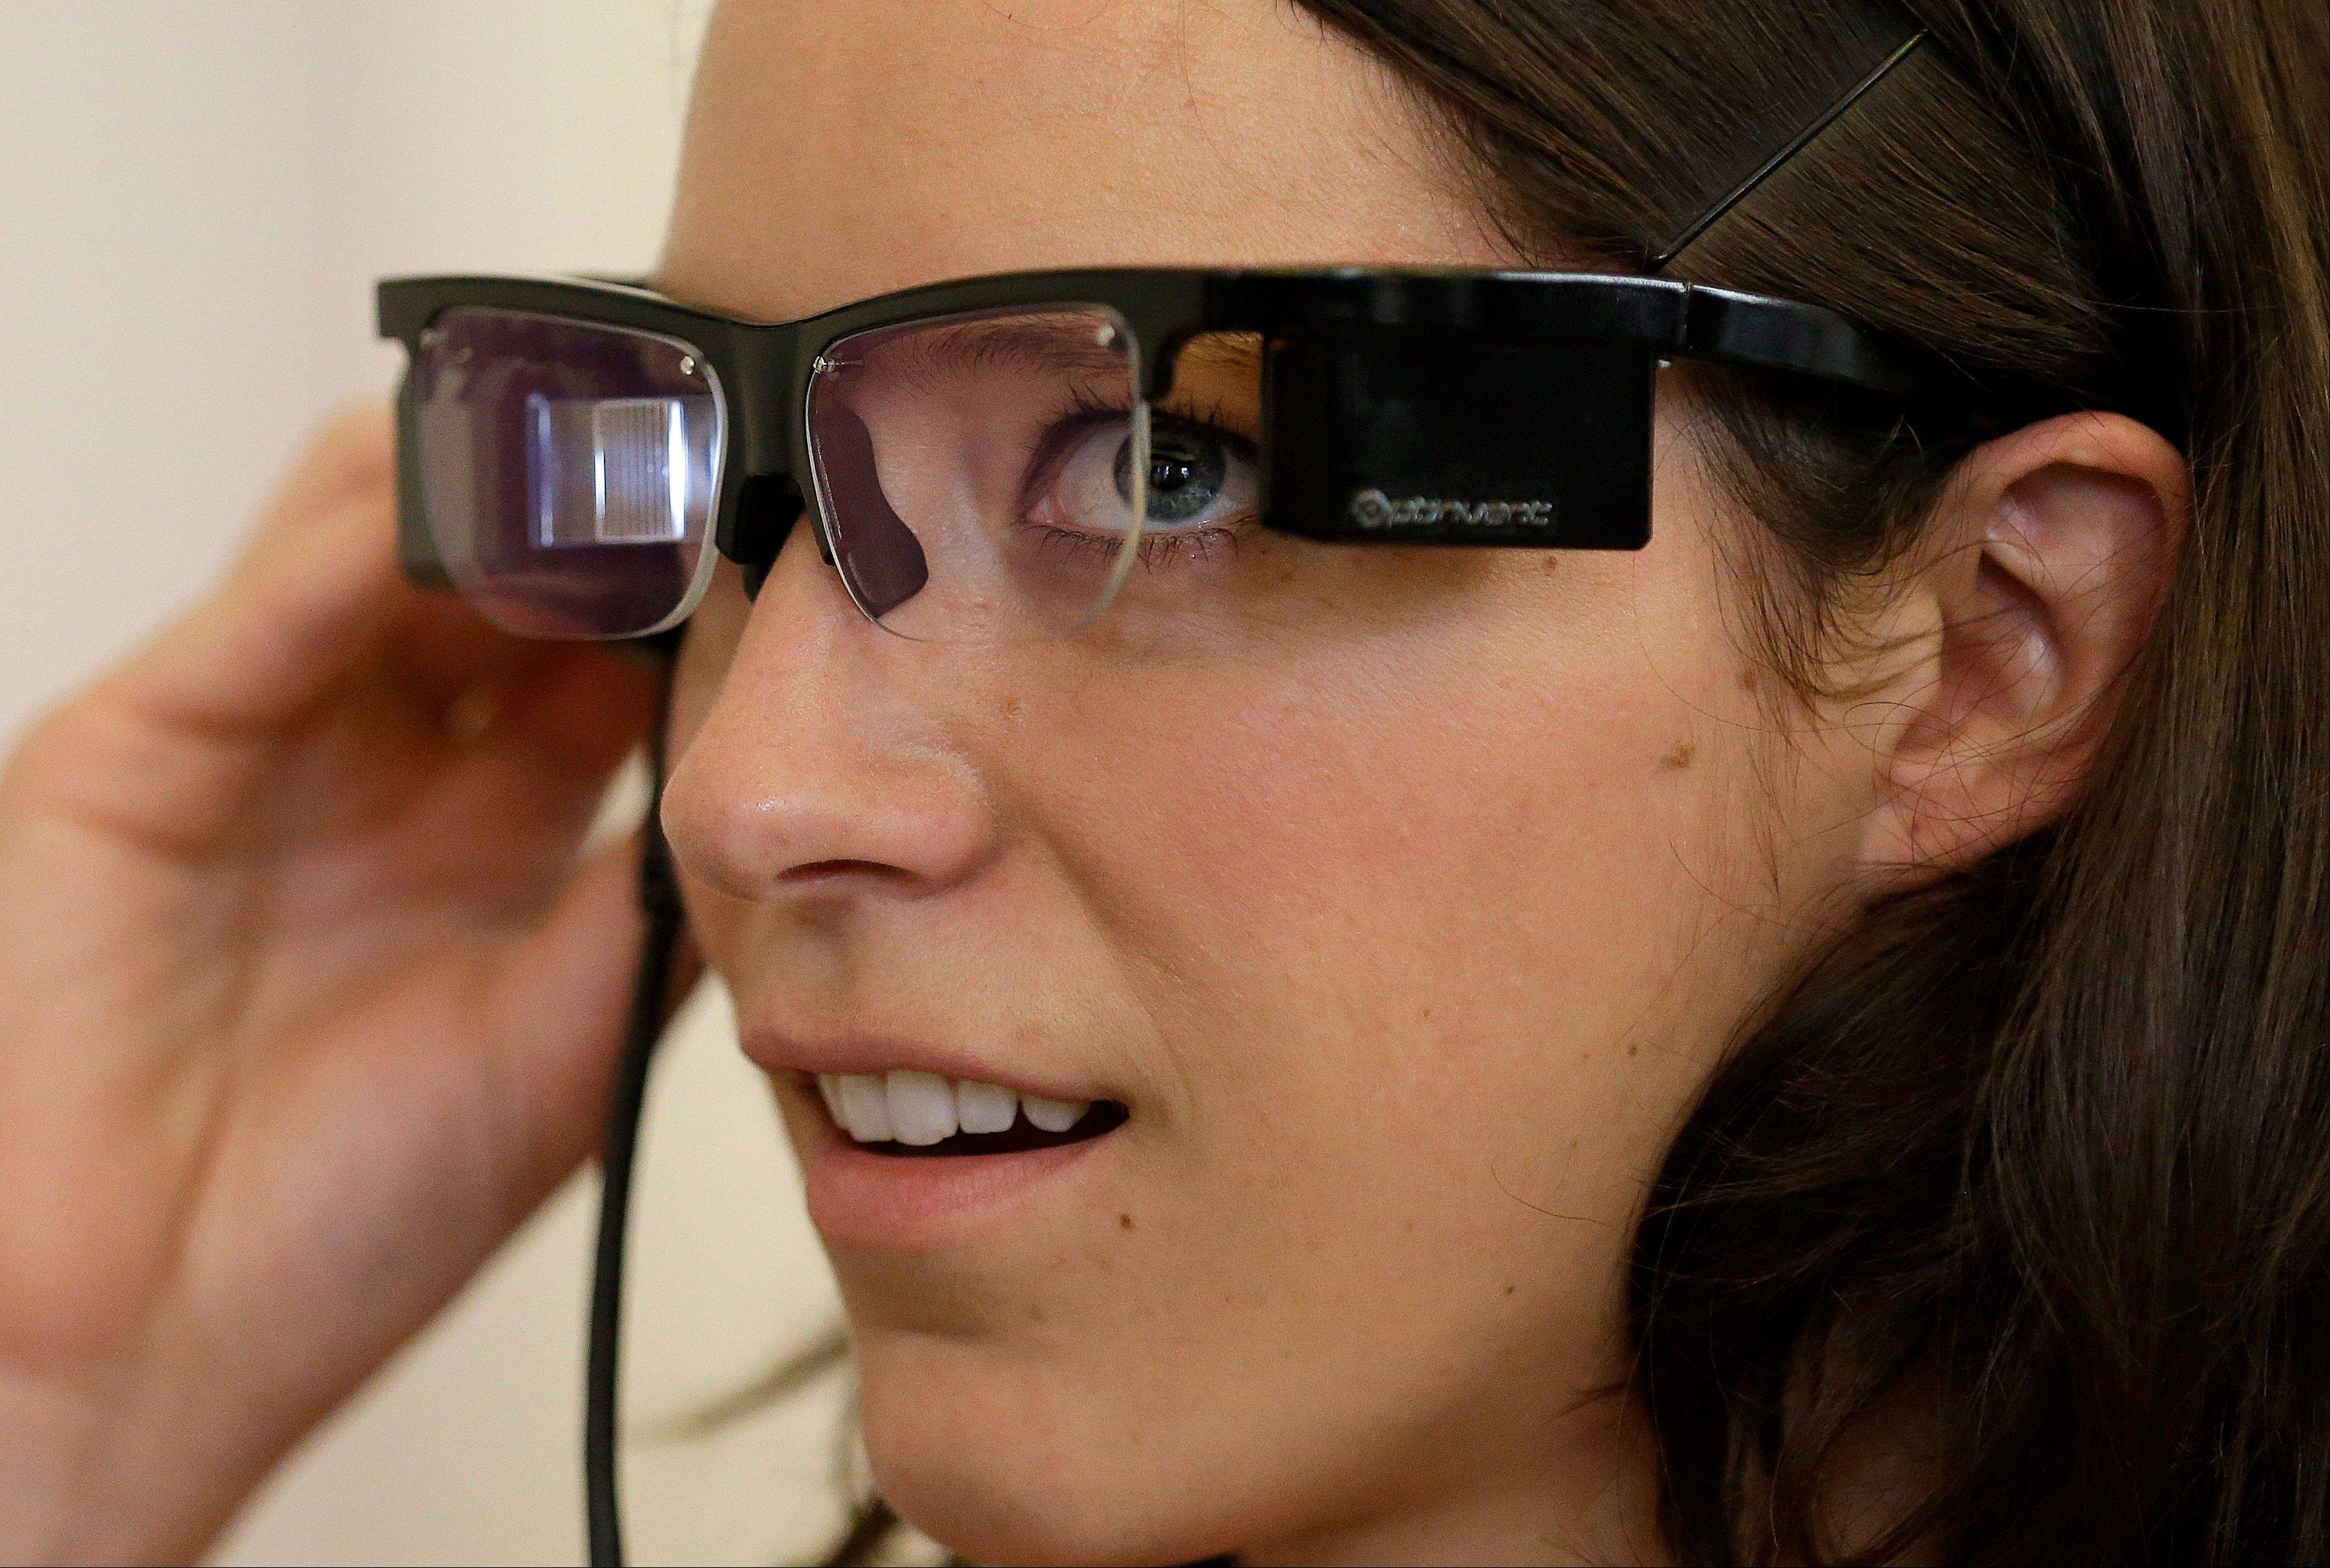 Claire Collins is given a demonstration of Optinvent ORA-S augmented reality glasses at the GLAZED Conference, a conference for the business of wearable technology, in San Francisco, Monday.